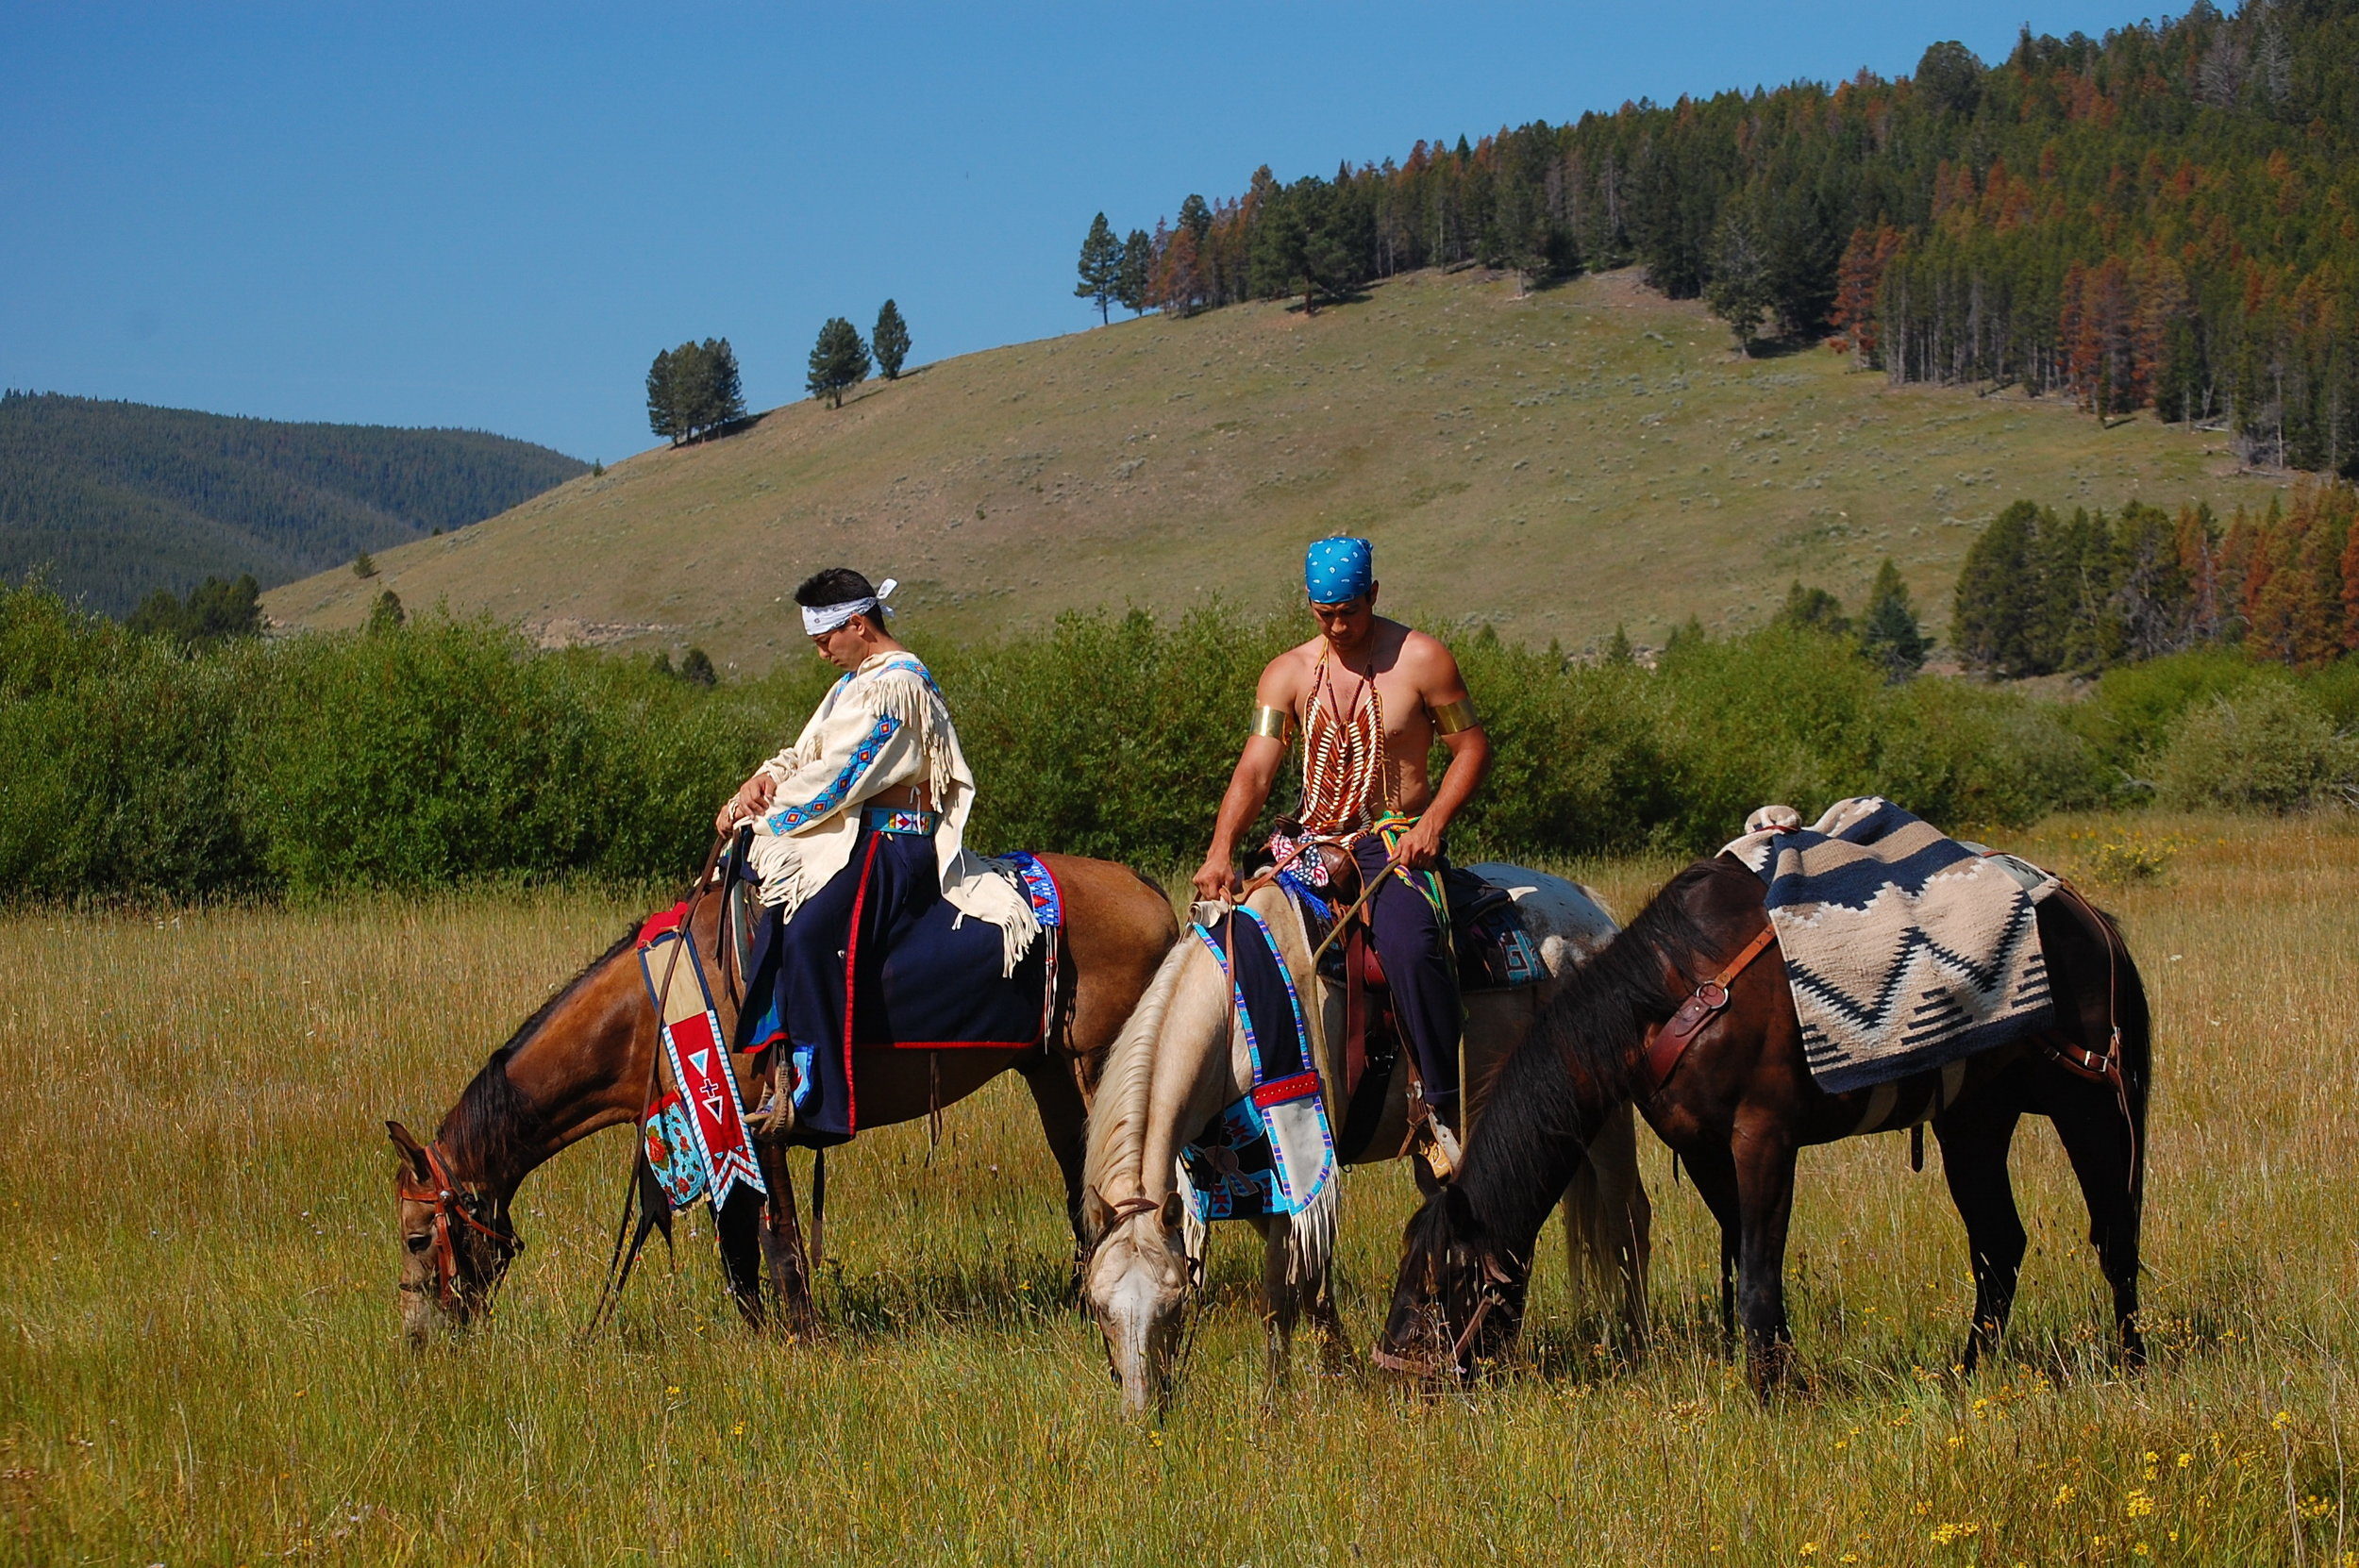 Along the Nez Perce National Historic Trail, at the Big Hole National Battlefield near Wisdom, MT. Battle commemoration August 2010. US Forest Service photo, by Roger Peterson